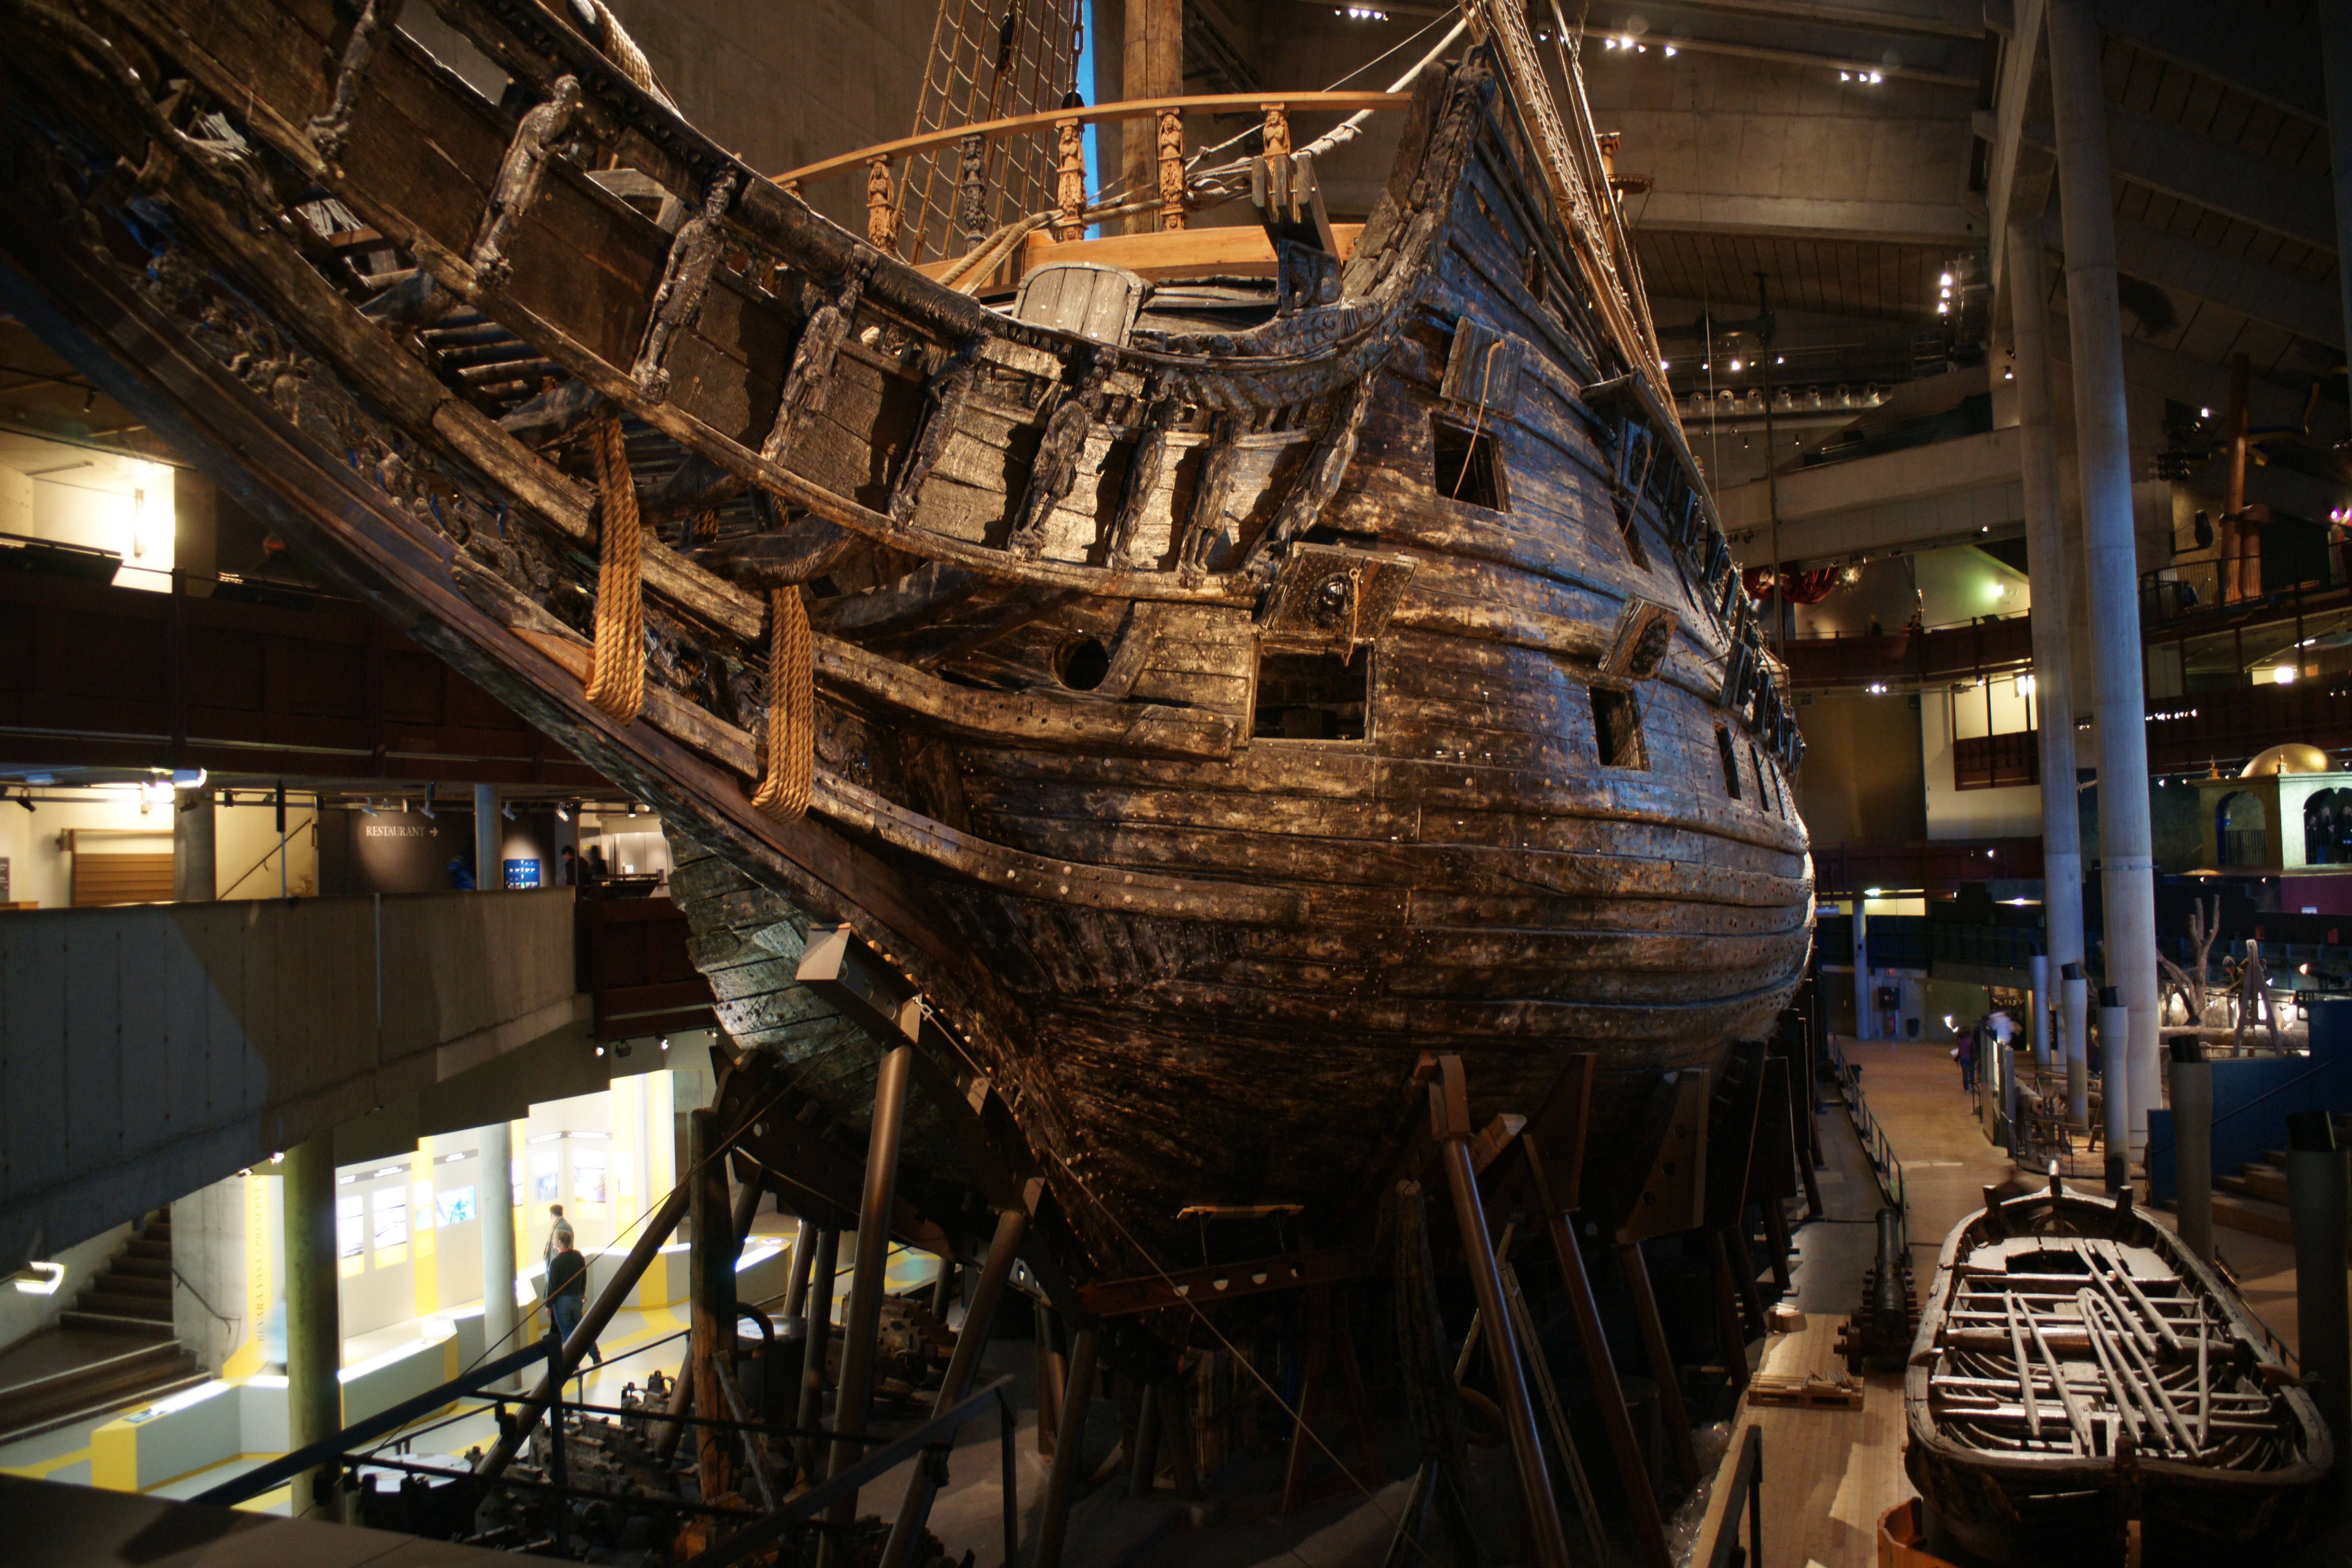 vasa ship pictures